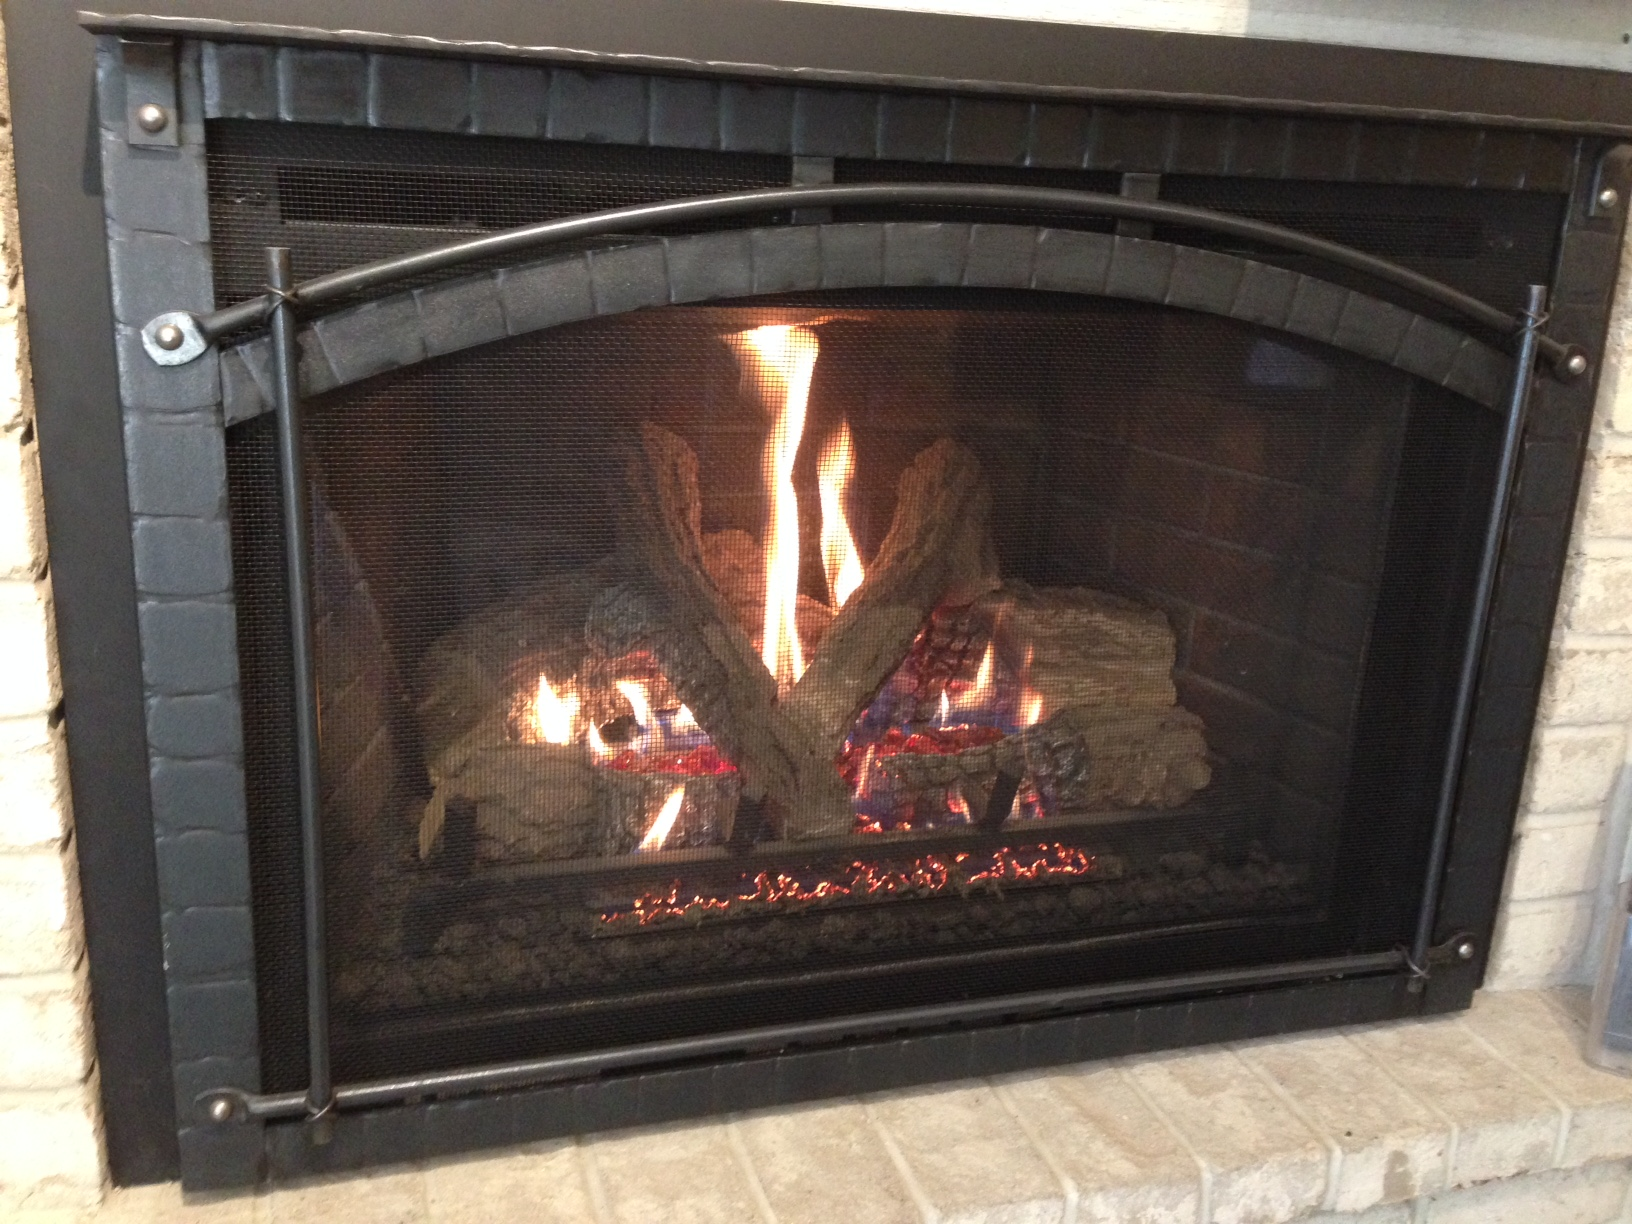 Heat Amp Glo Escape I35 With Chateau Forge Front Gagnon